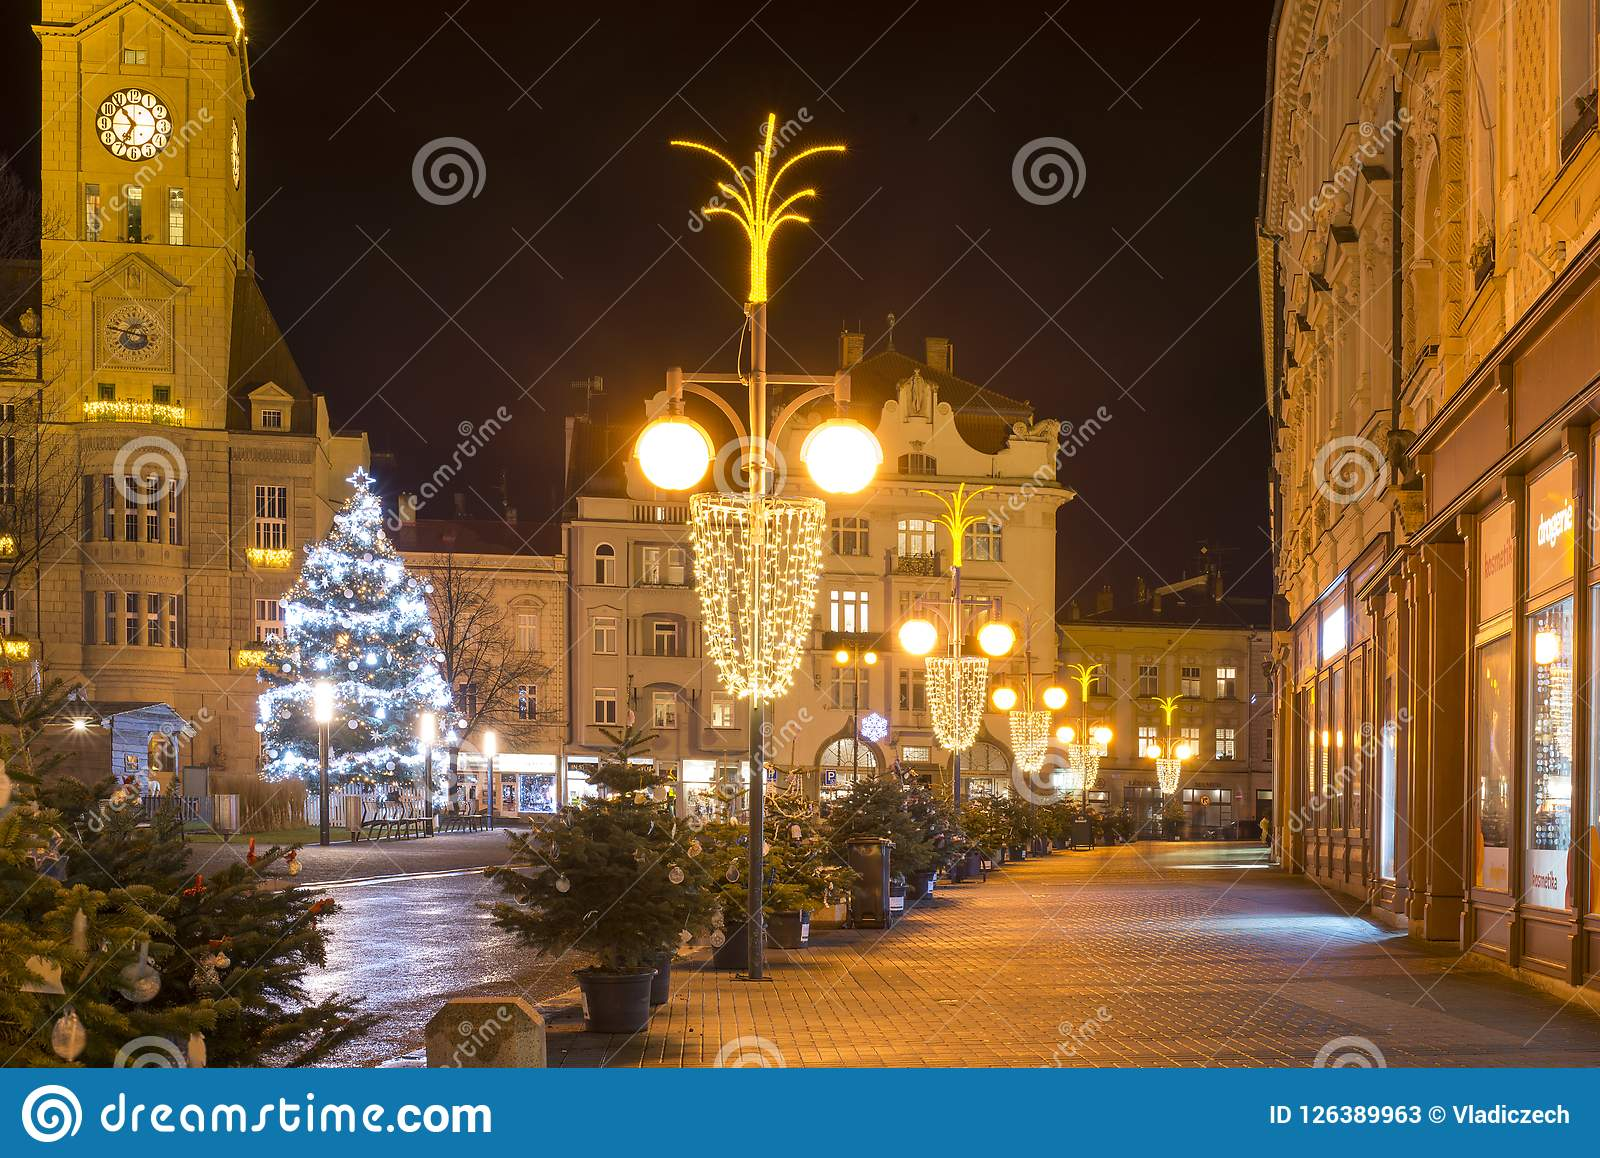 Empty Christmas Town With Decorations And Lights And The Tree No